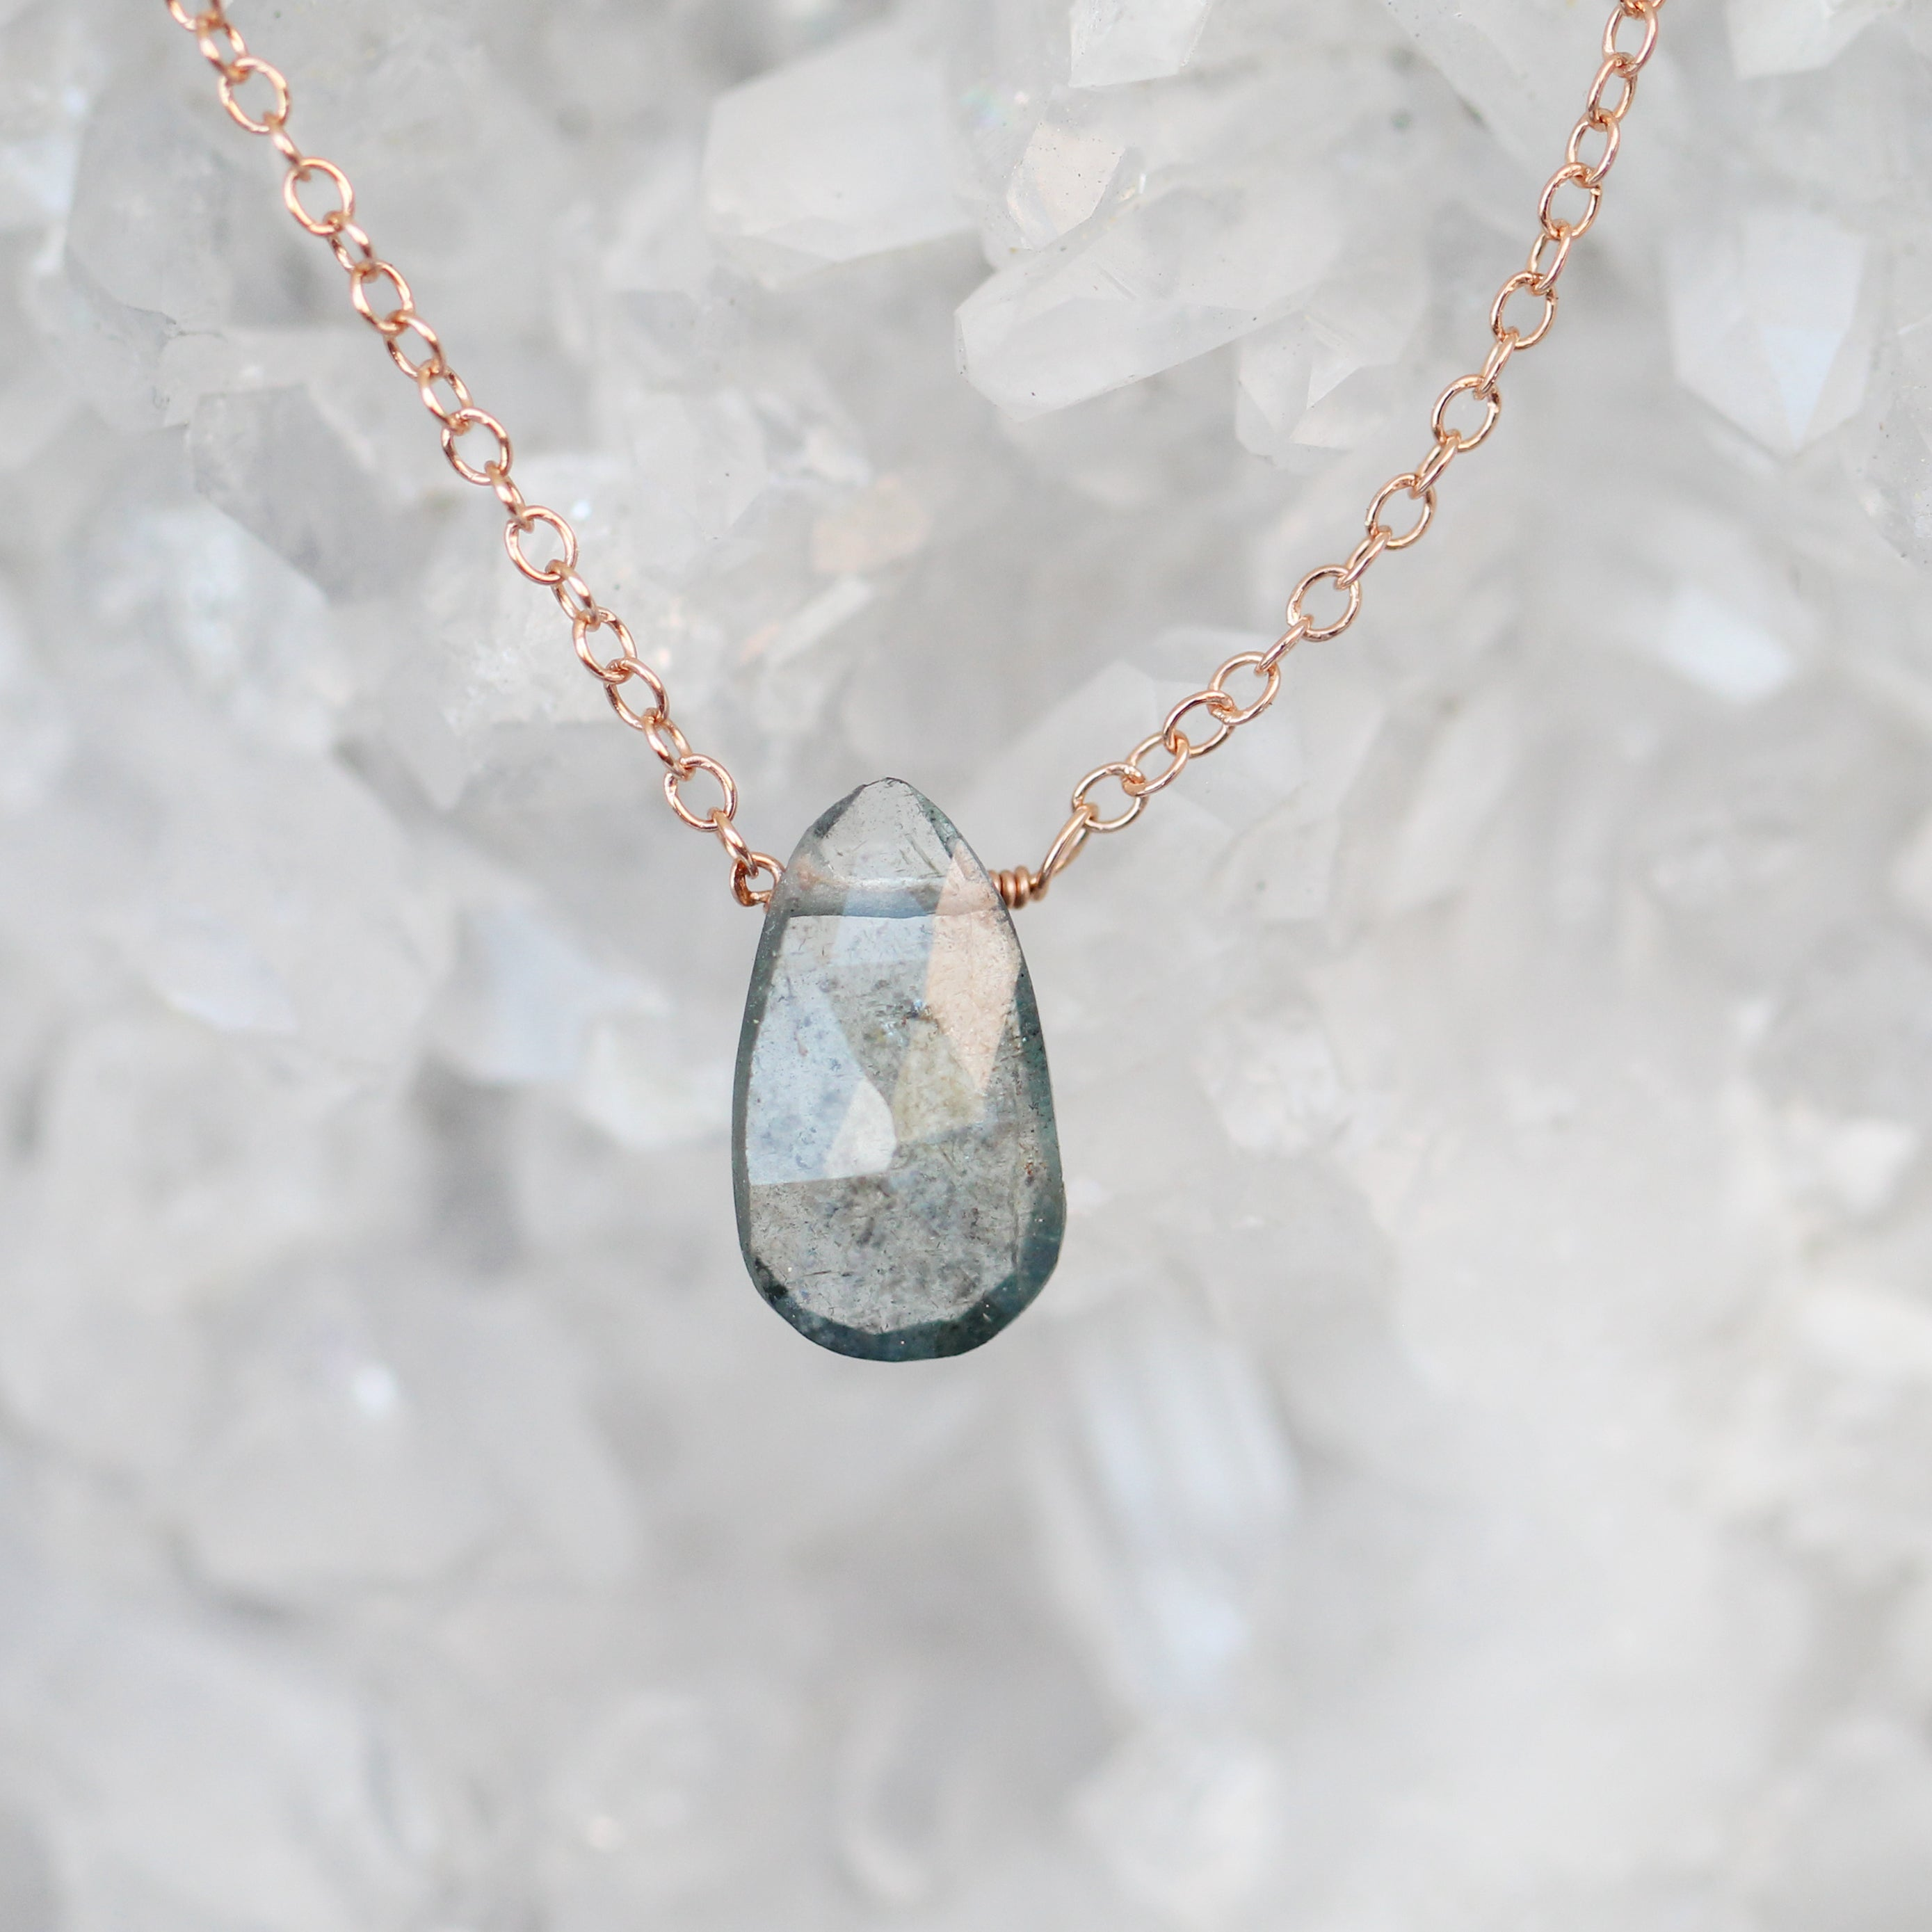 "Mossy Aquamarine Teardrop Necklace on a 14k Gold Fill 18"" Chain - Midwinter Co. Alternative Bridal Rings and Modern Fine Jewelry"